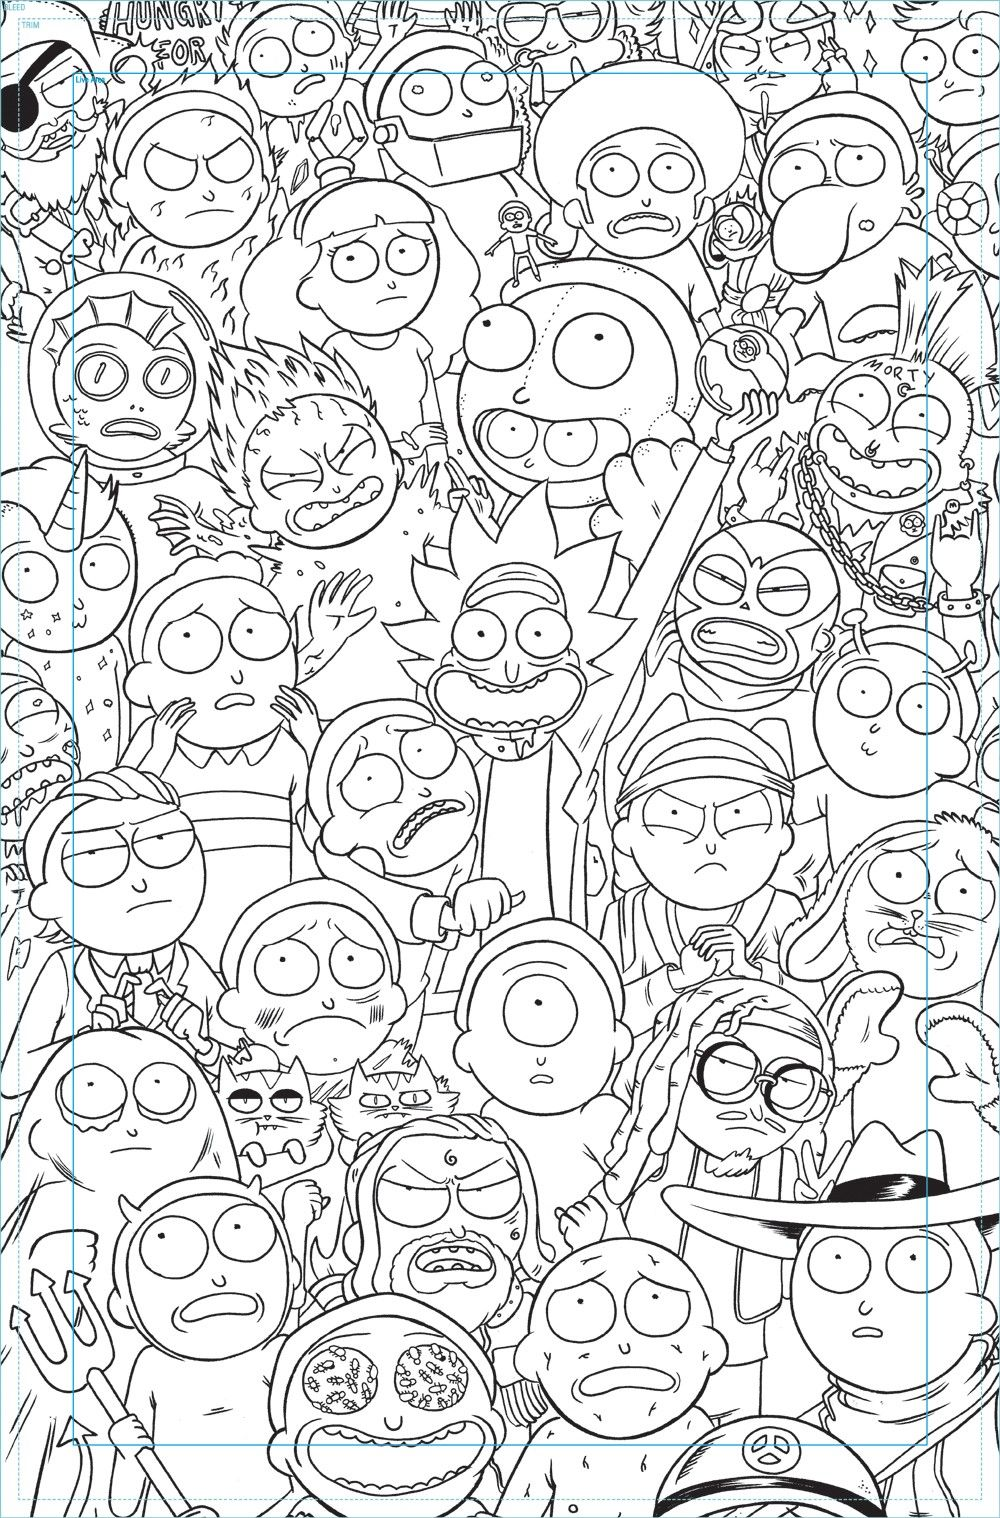 Pin By Dillon Skywalker On Coloring Coloring Books Coloring Pages Star Wars Coloring Book